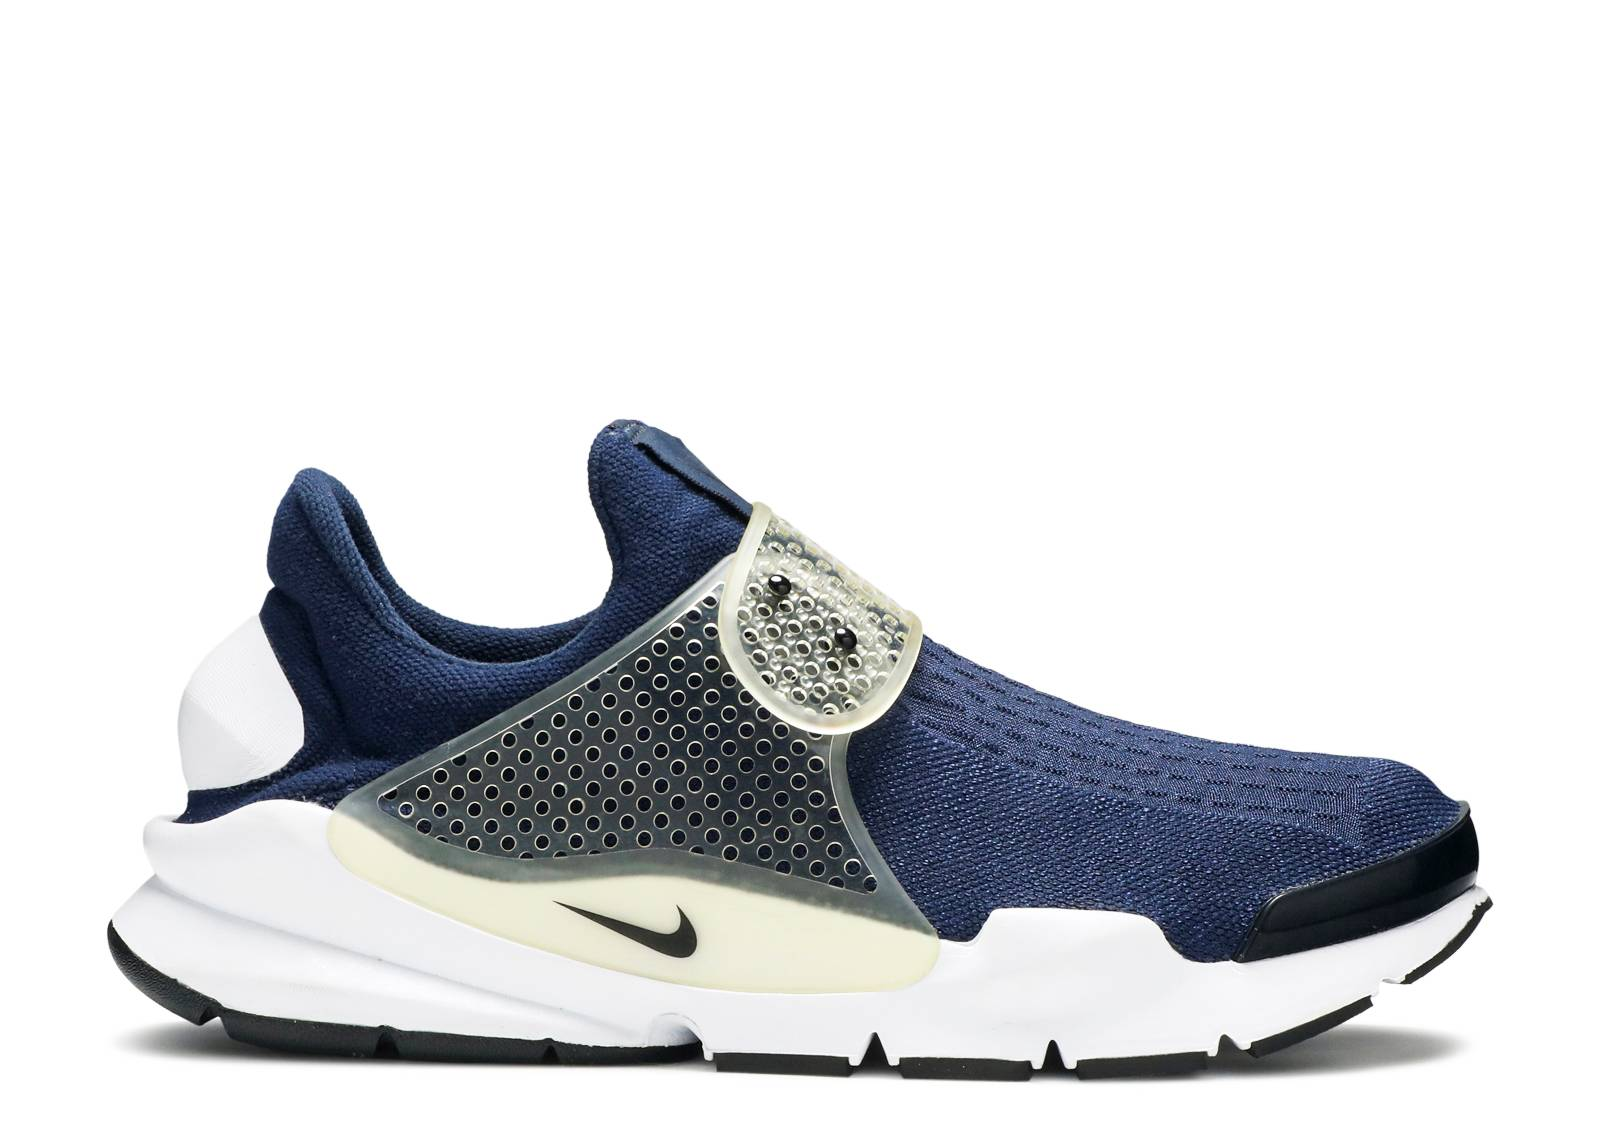 premium selection 3d69e fb967 acheter Nike Sock Dart Tech Fleece Grey Heather Mulberry pas cher 2